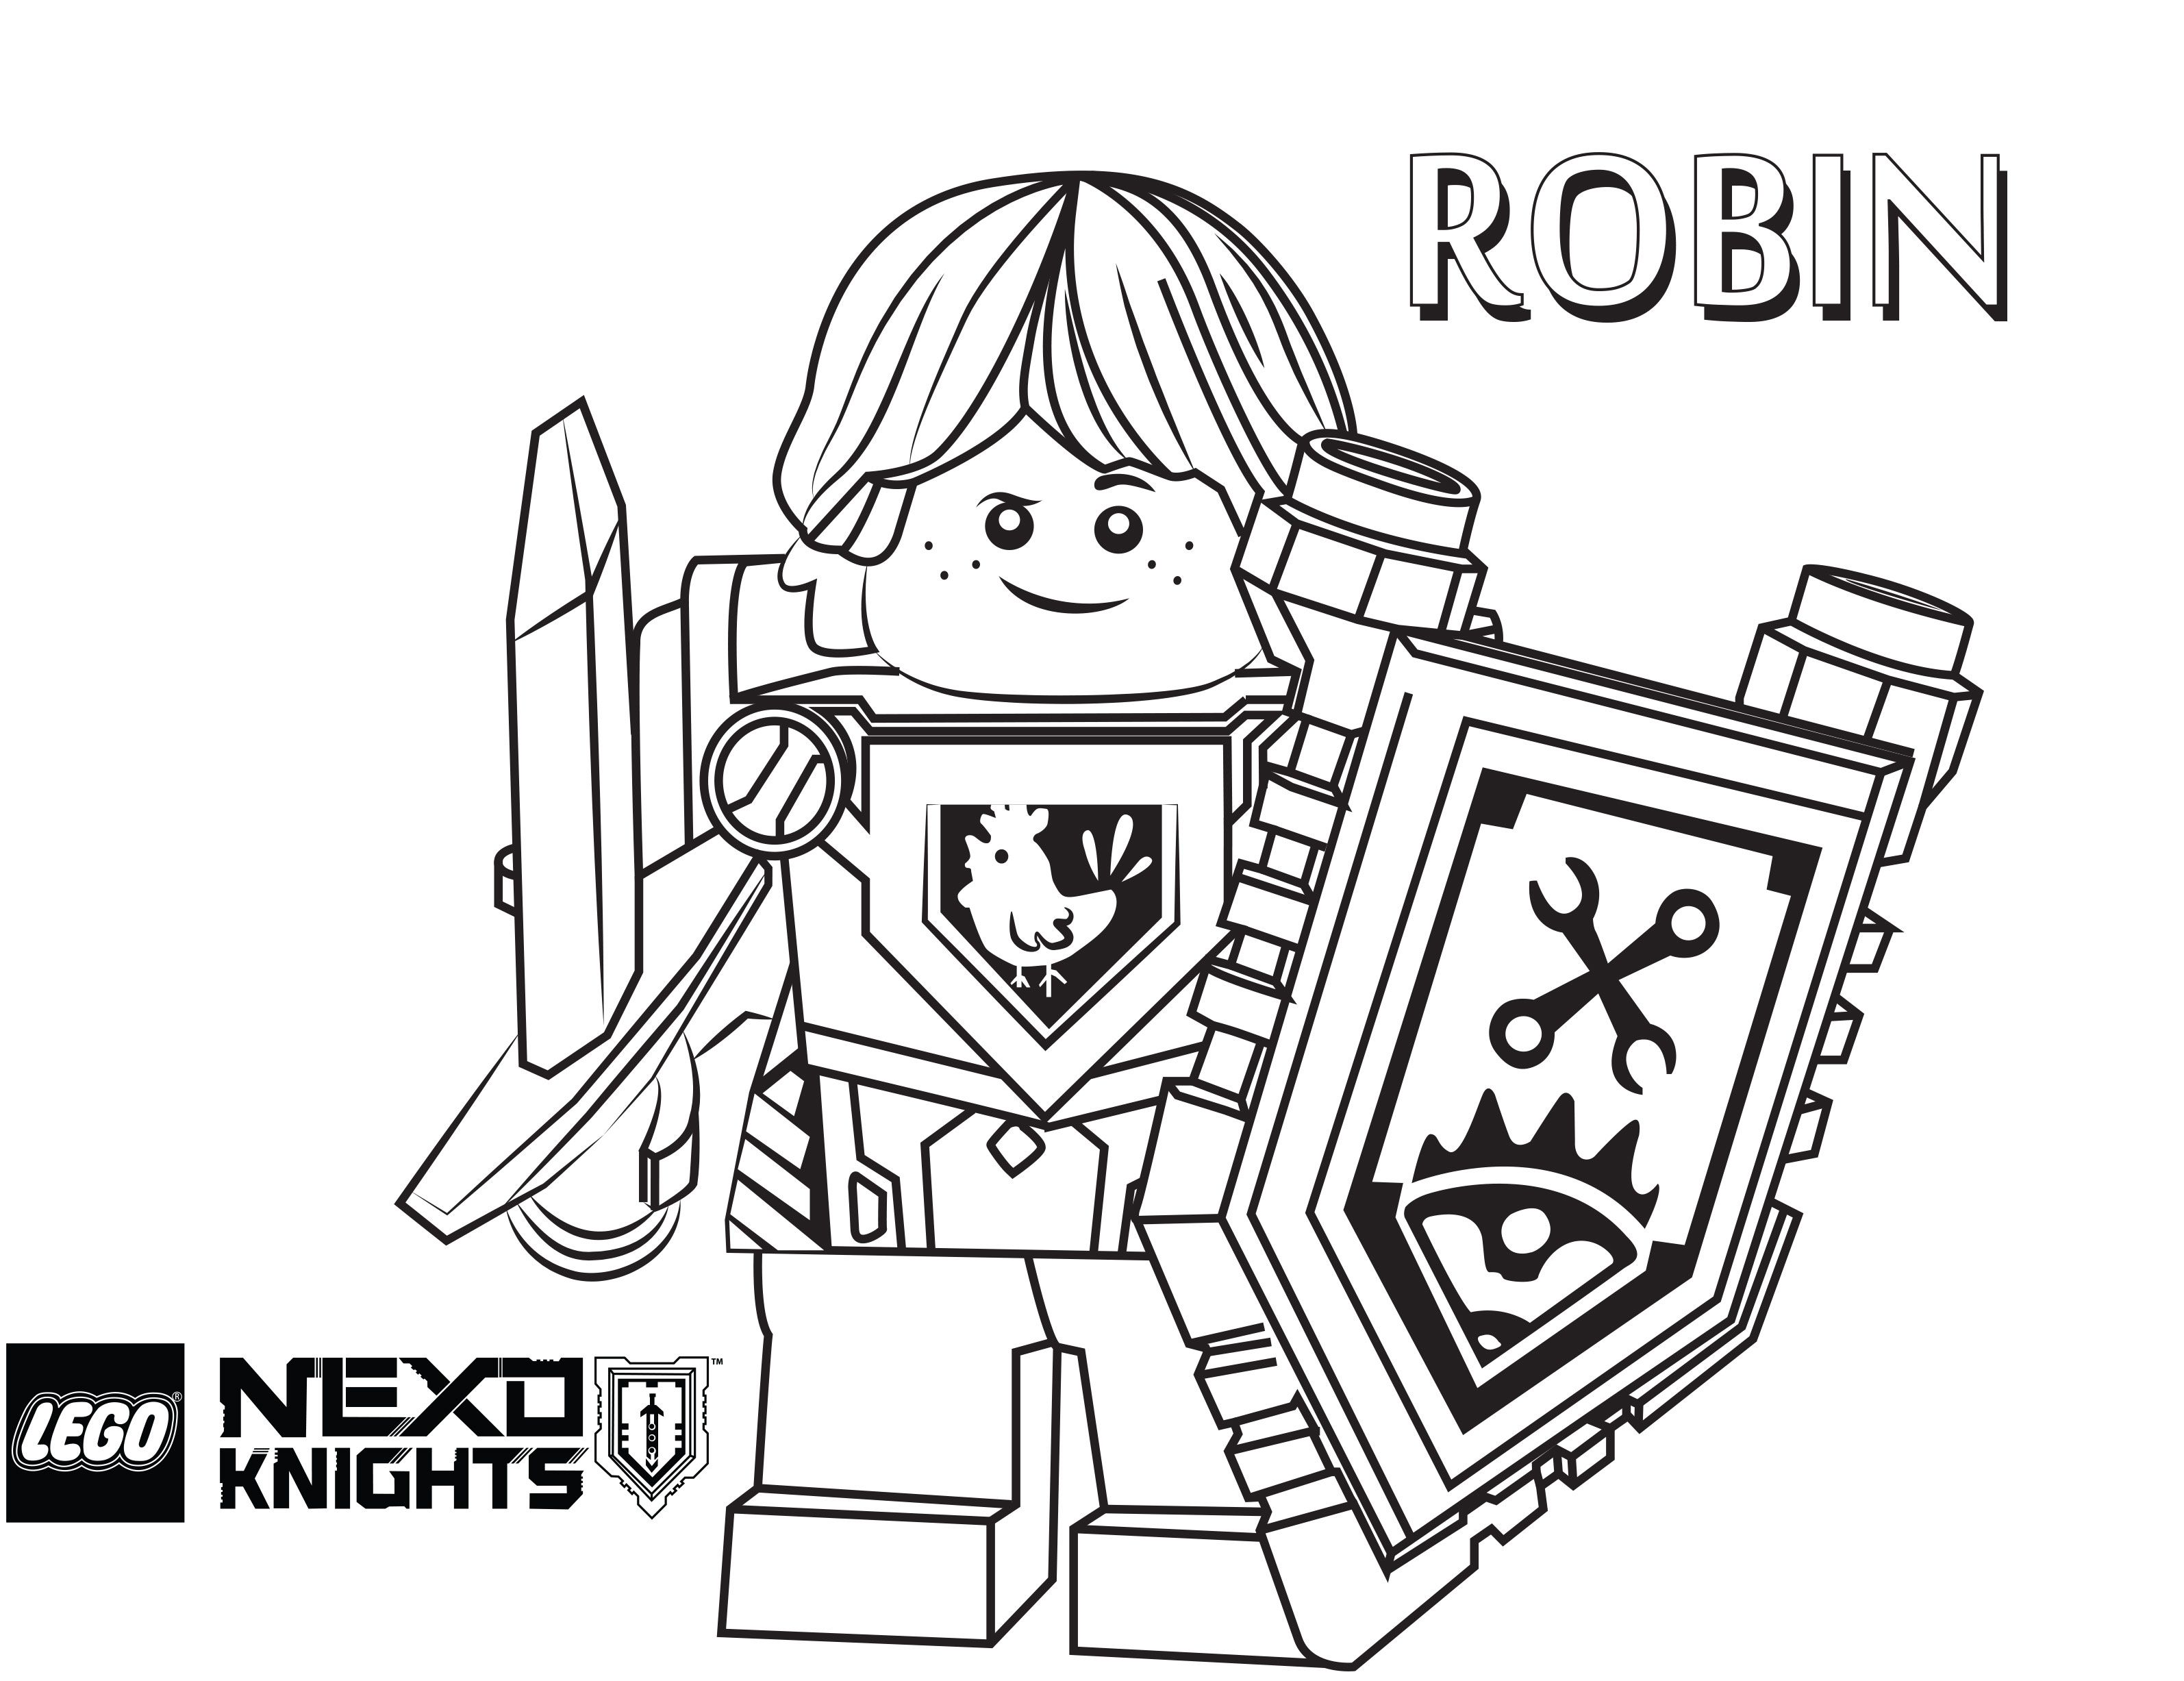 Lego Nexo Knights Coloring Pages Free Printable Lego Nexo Knights Color Sheets Superhero Coloring Pages Lego Coloring Pages Batman Coloring Pages